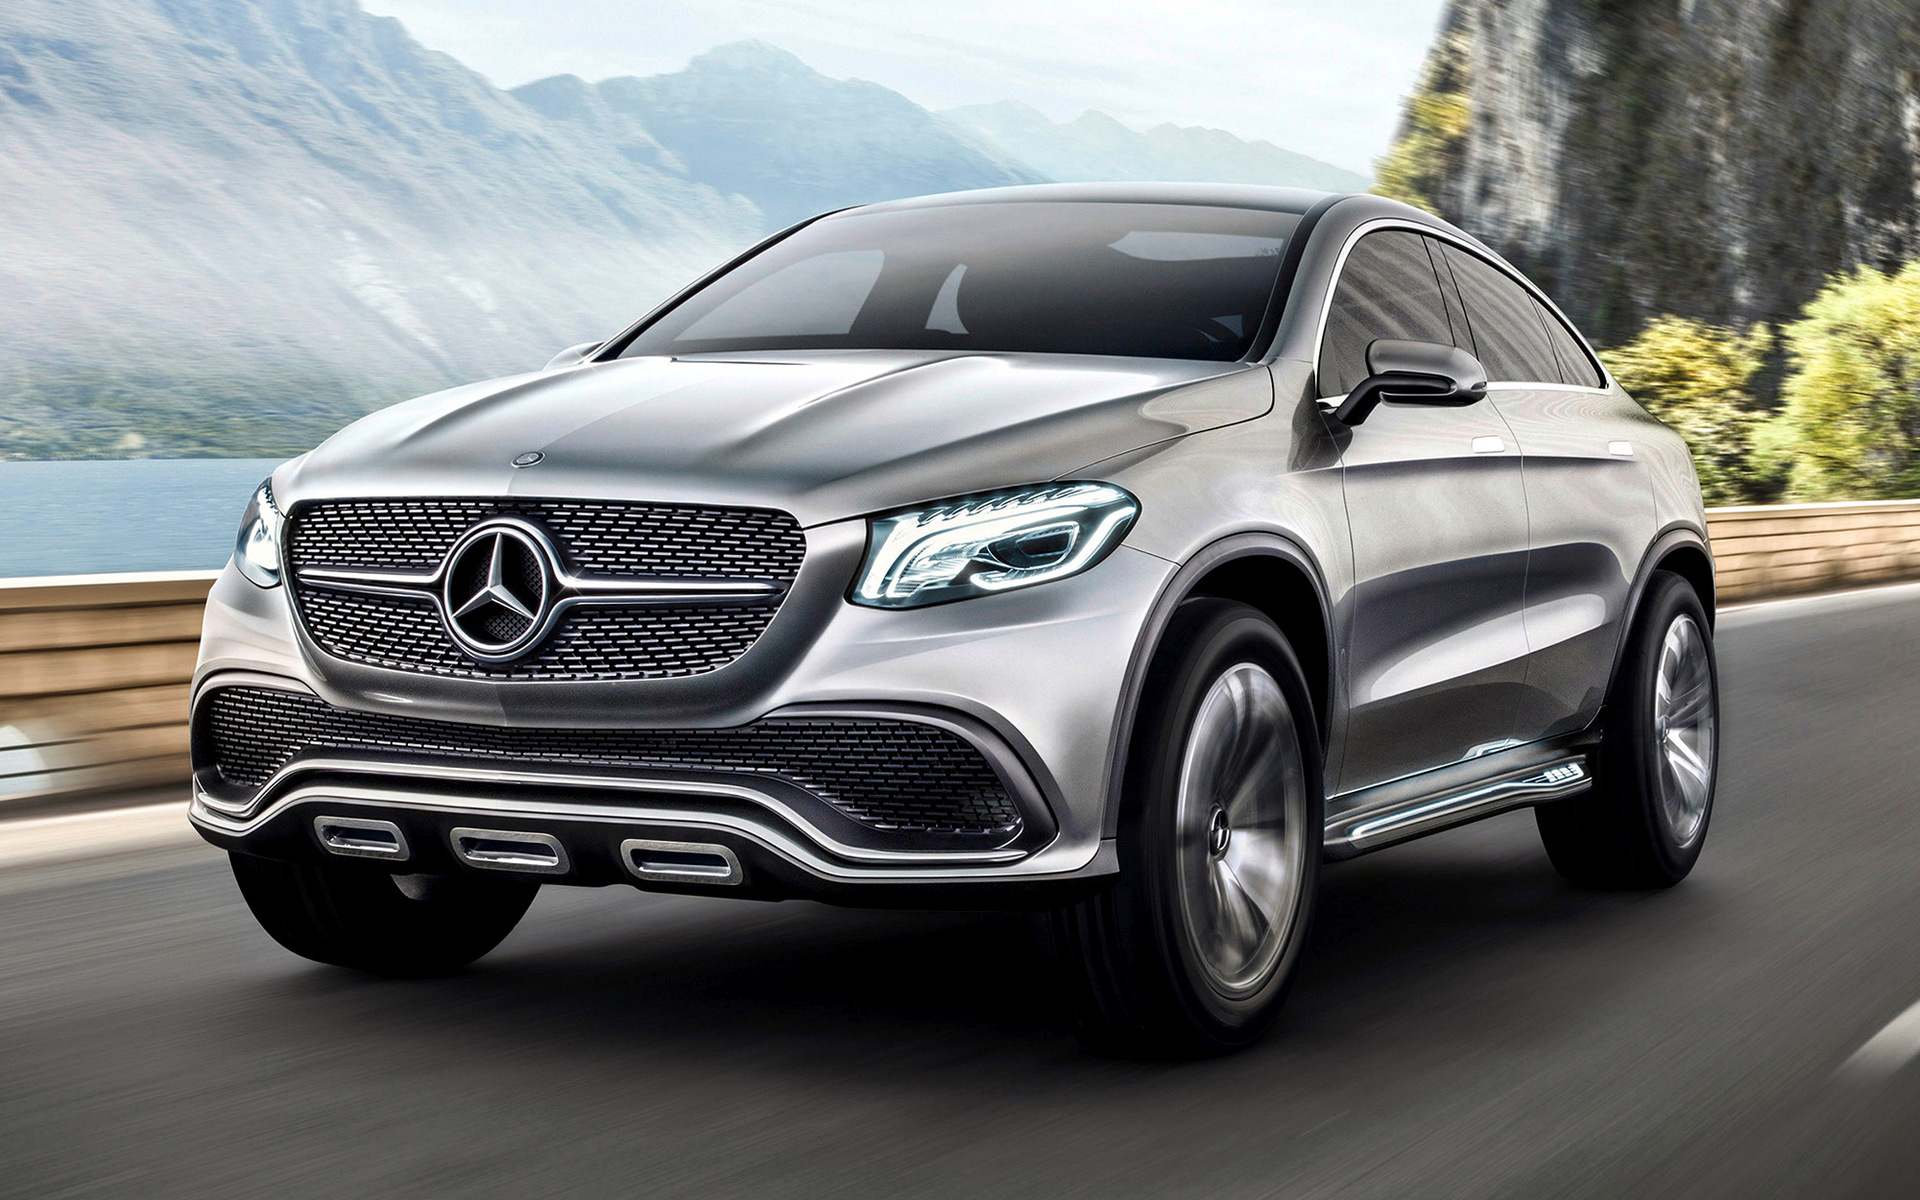 Mercedes-Benz Concept Coupe SUV (2014) Wallpapers and HD Images - Car Pixel